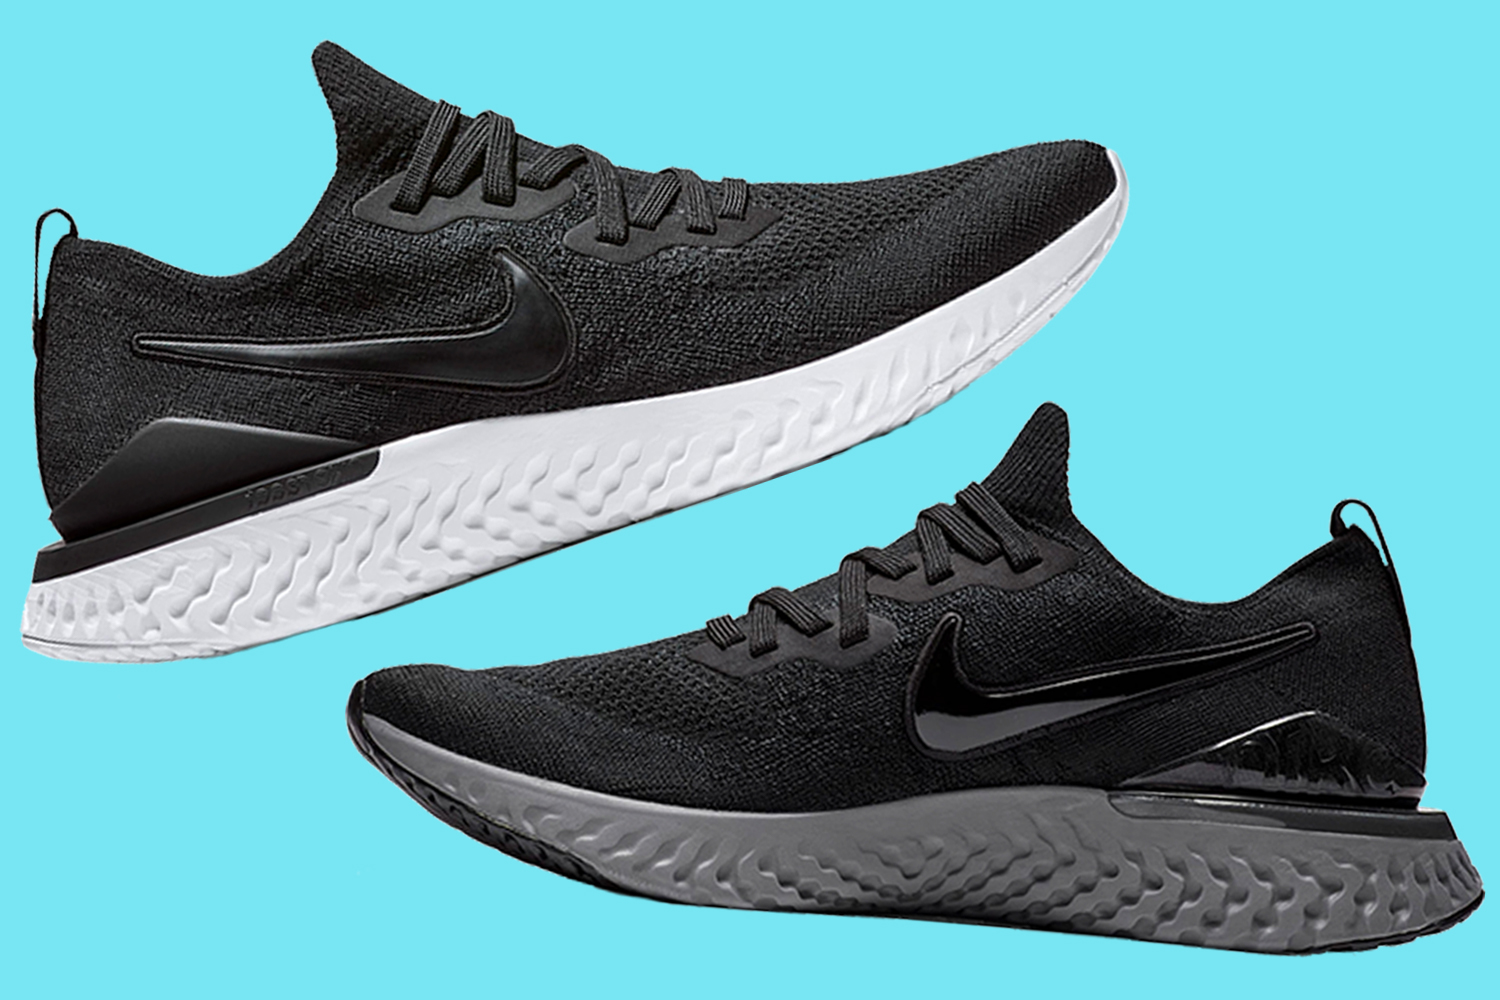 Nike Epic React Flyknit 2 Running Sneakers Are 40% Off